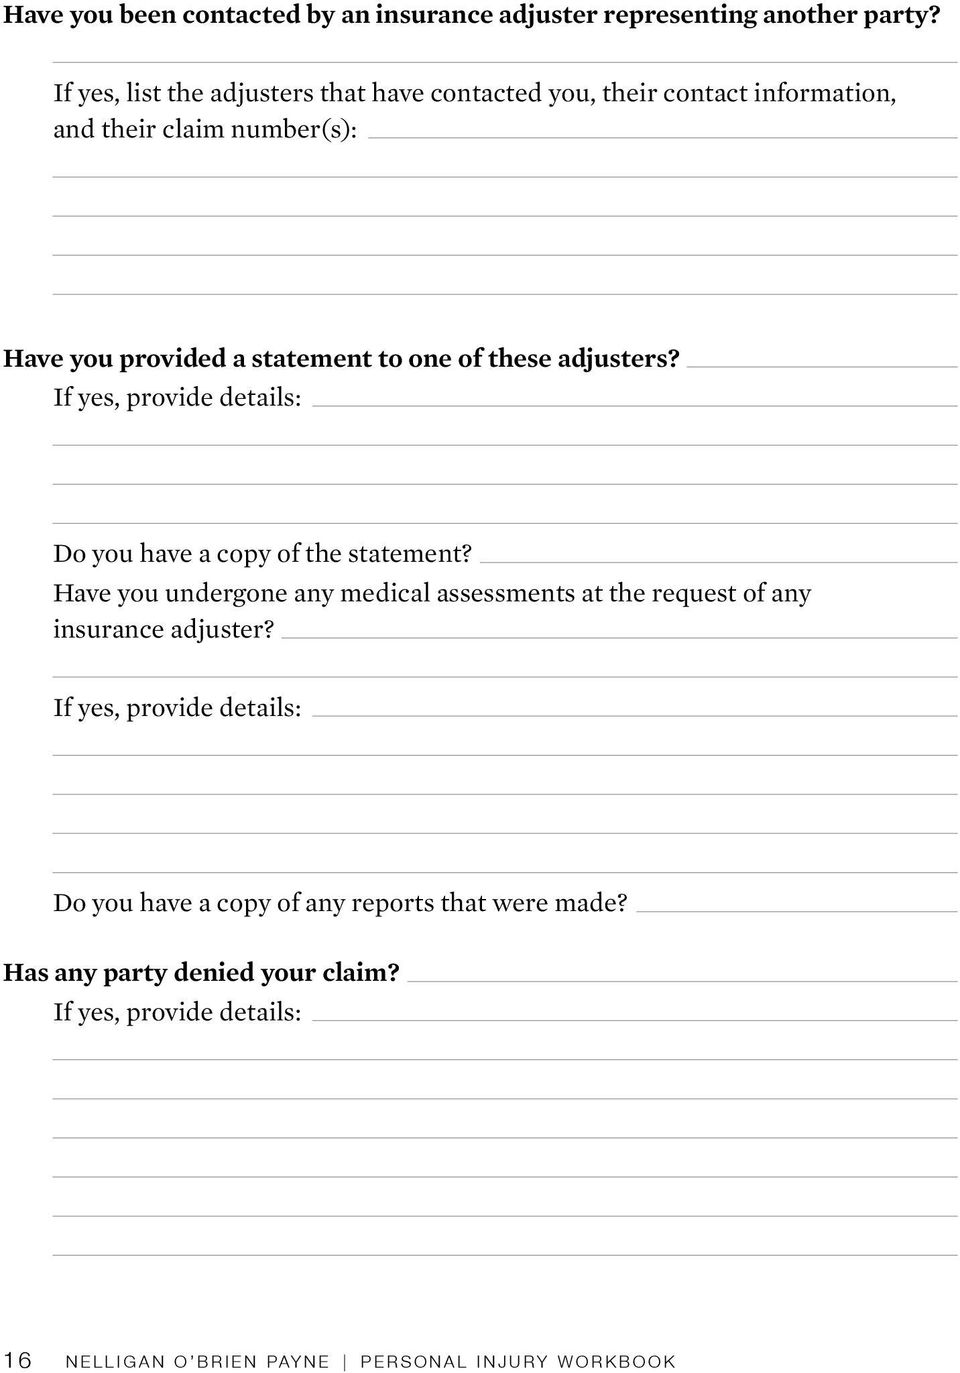 a statement to one of these adjusters? Do you have a copy of the statement?